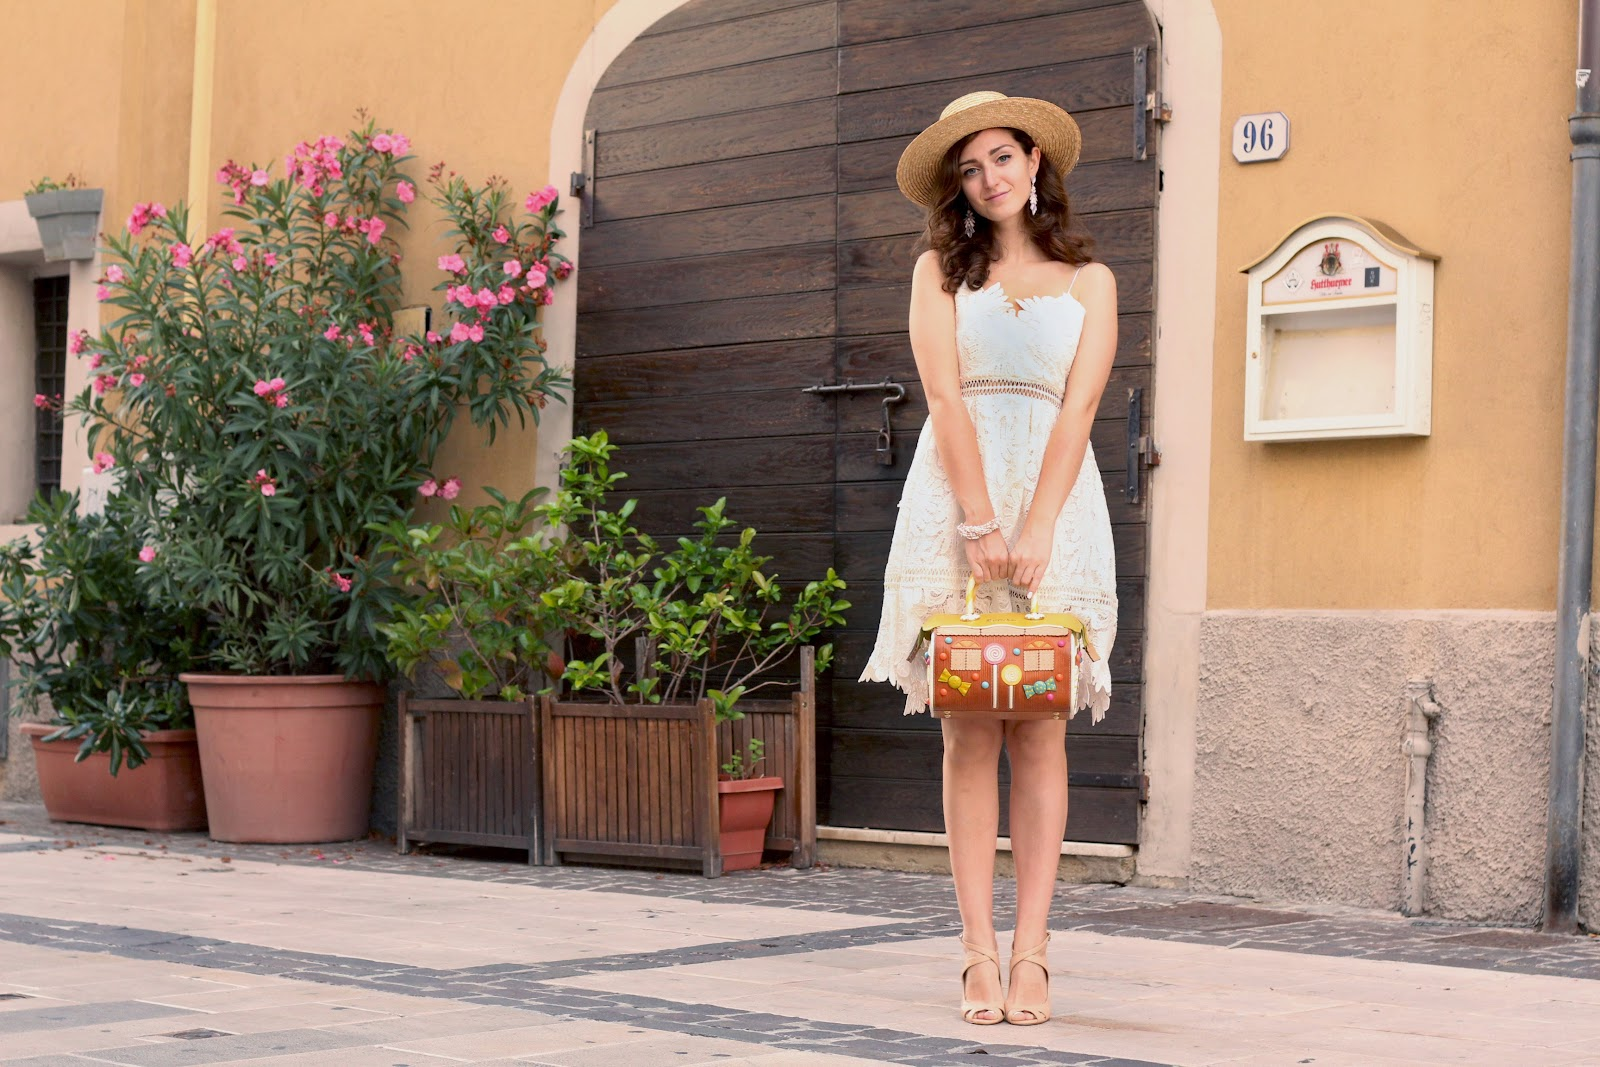 fashion style blogger outfit ootd italian girl italy trend vogue glamour pescara chicwish lace dress white zara shoes heels sandals braccialini marzapane marzipan bag borsa bijou brigitte hm